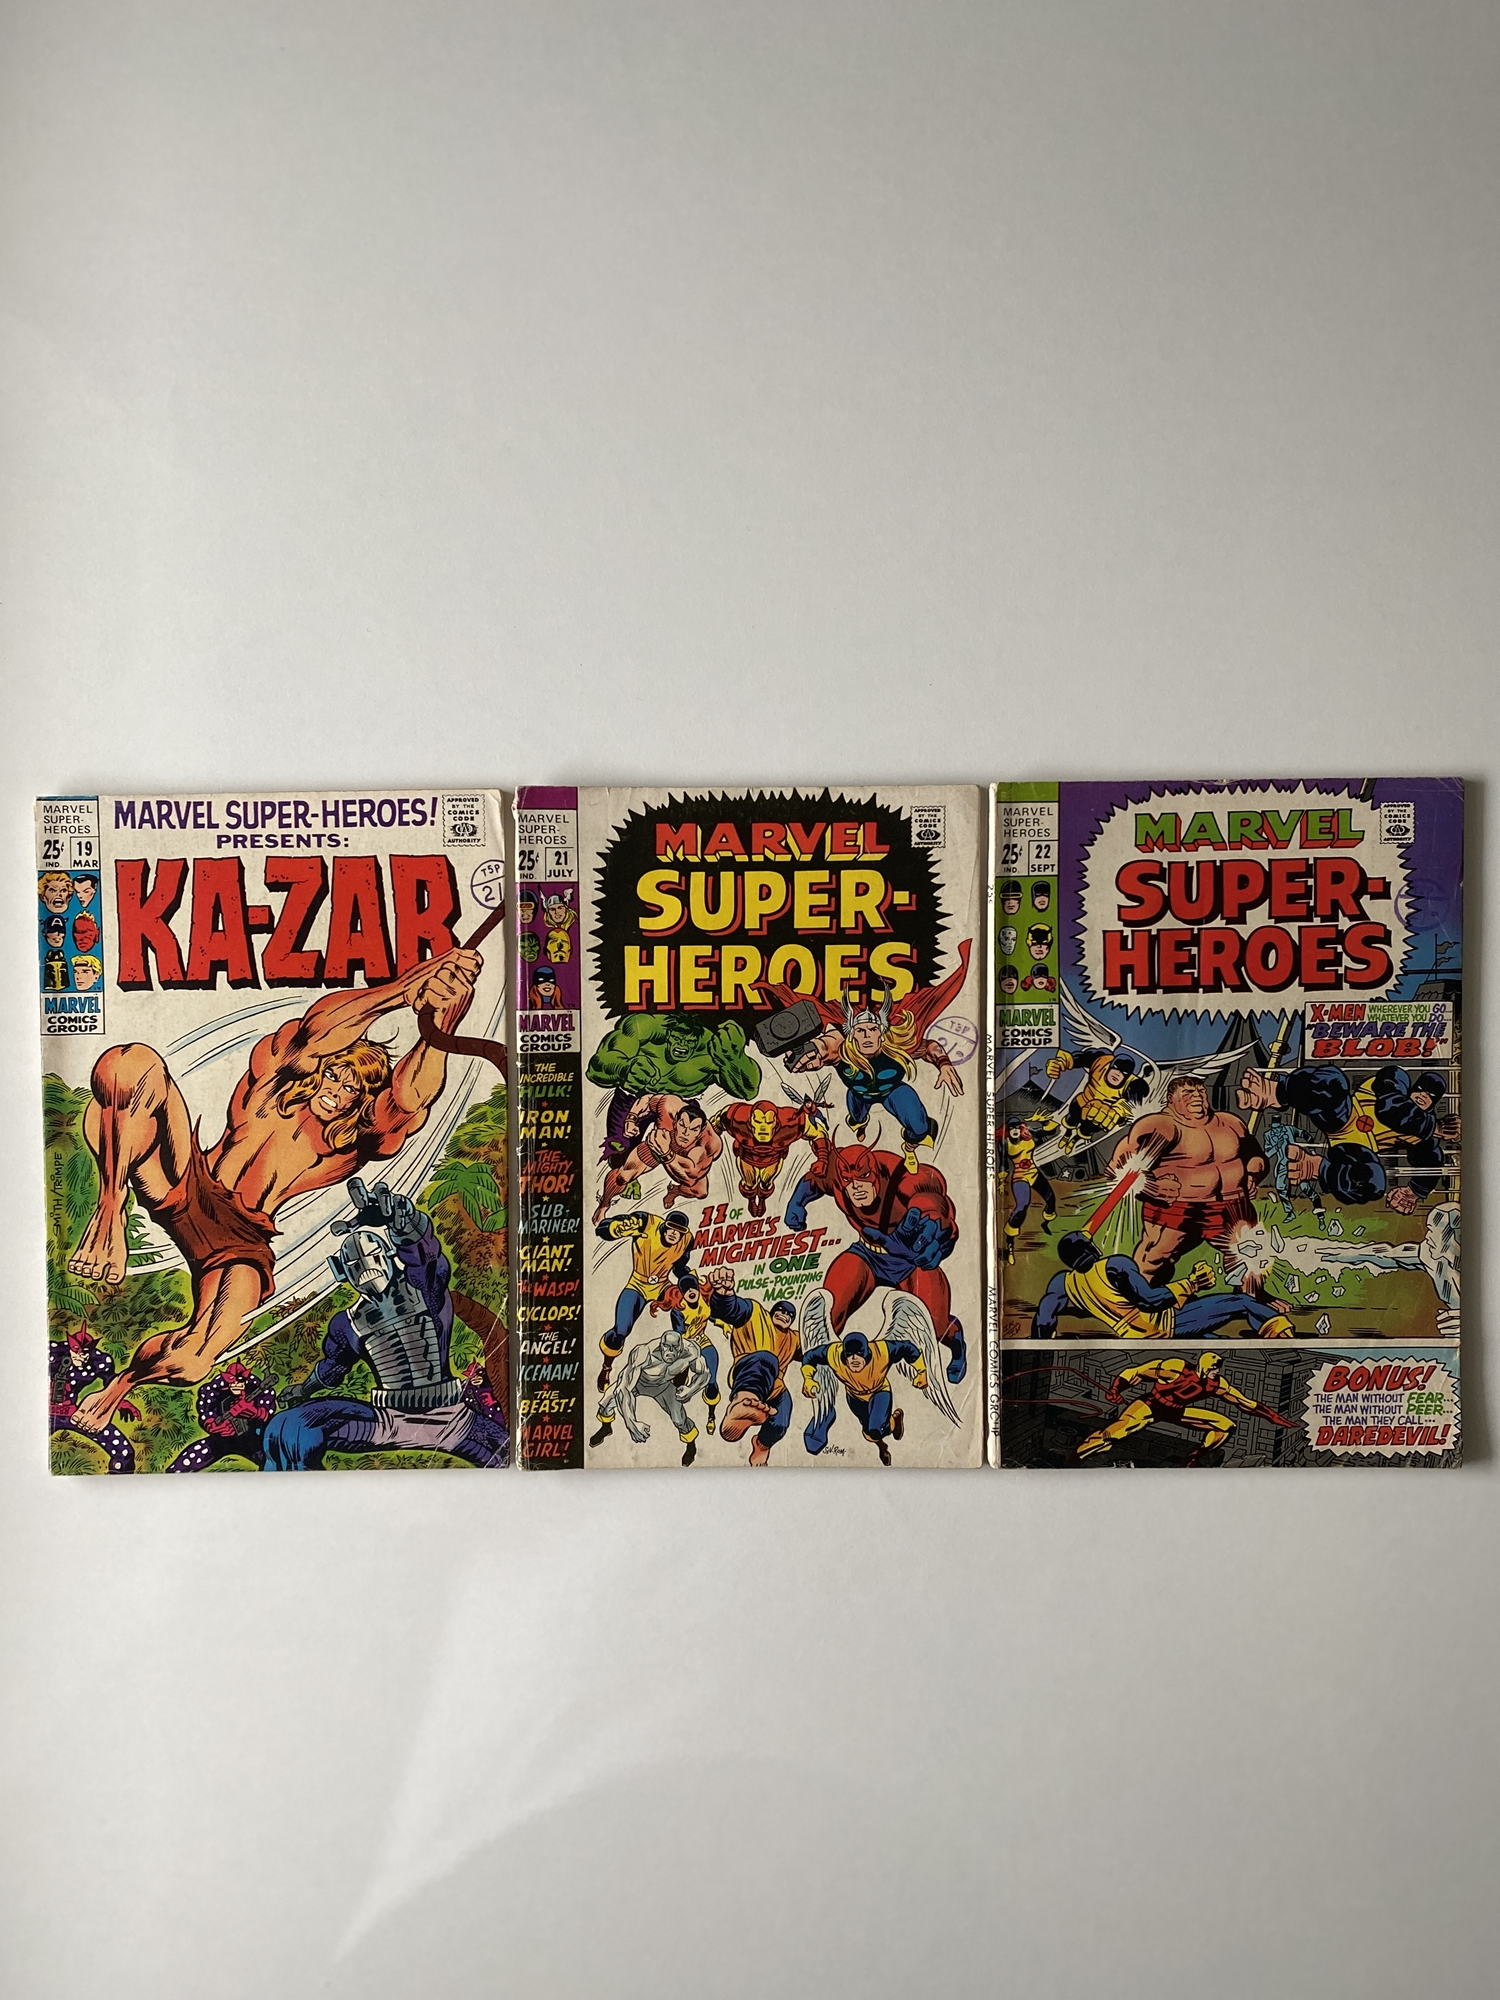 Lot 10 - MARVEL SUPER HEROES # 19, 21, 22 (Group of 3) - (1969 - MARVEL - Cents Copy with Pence Stamp) -